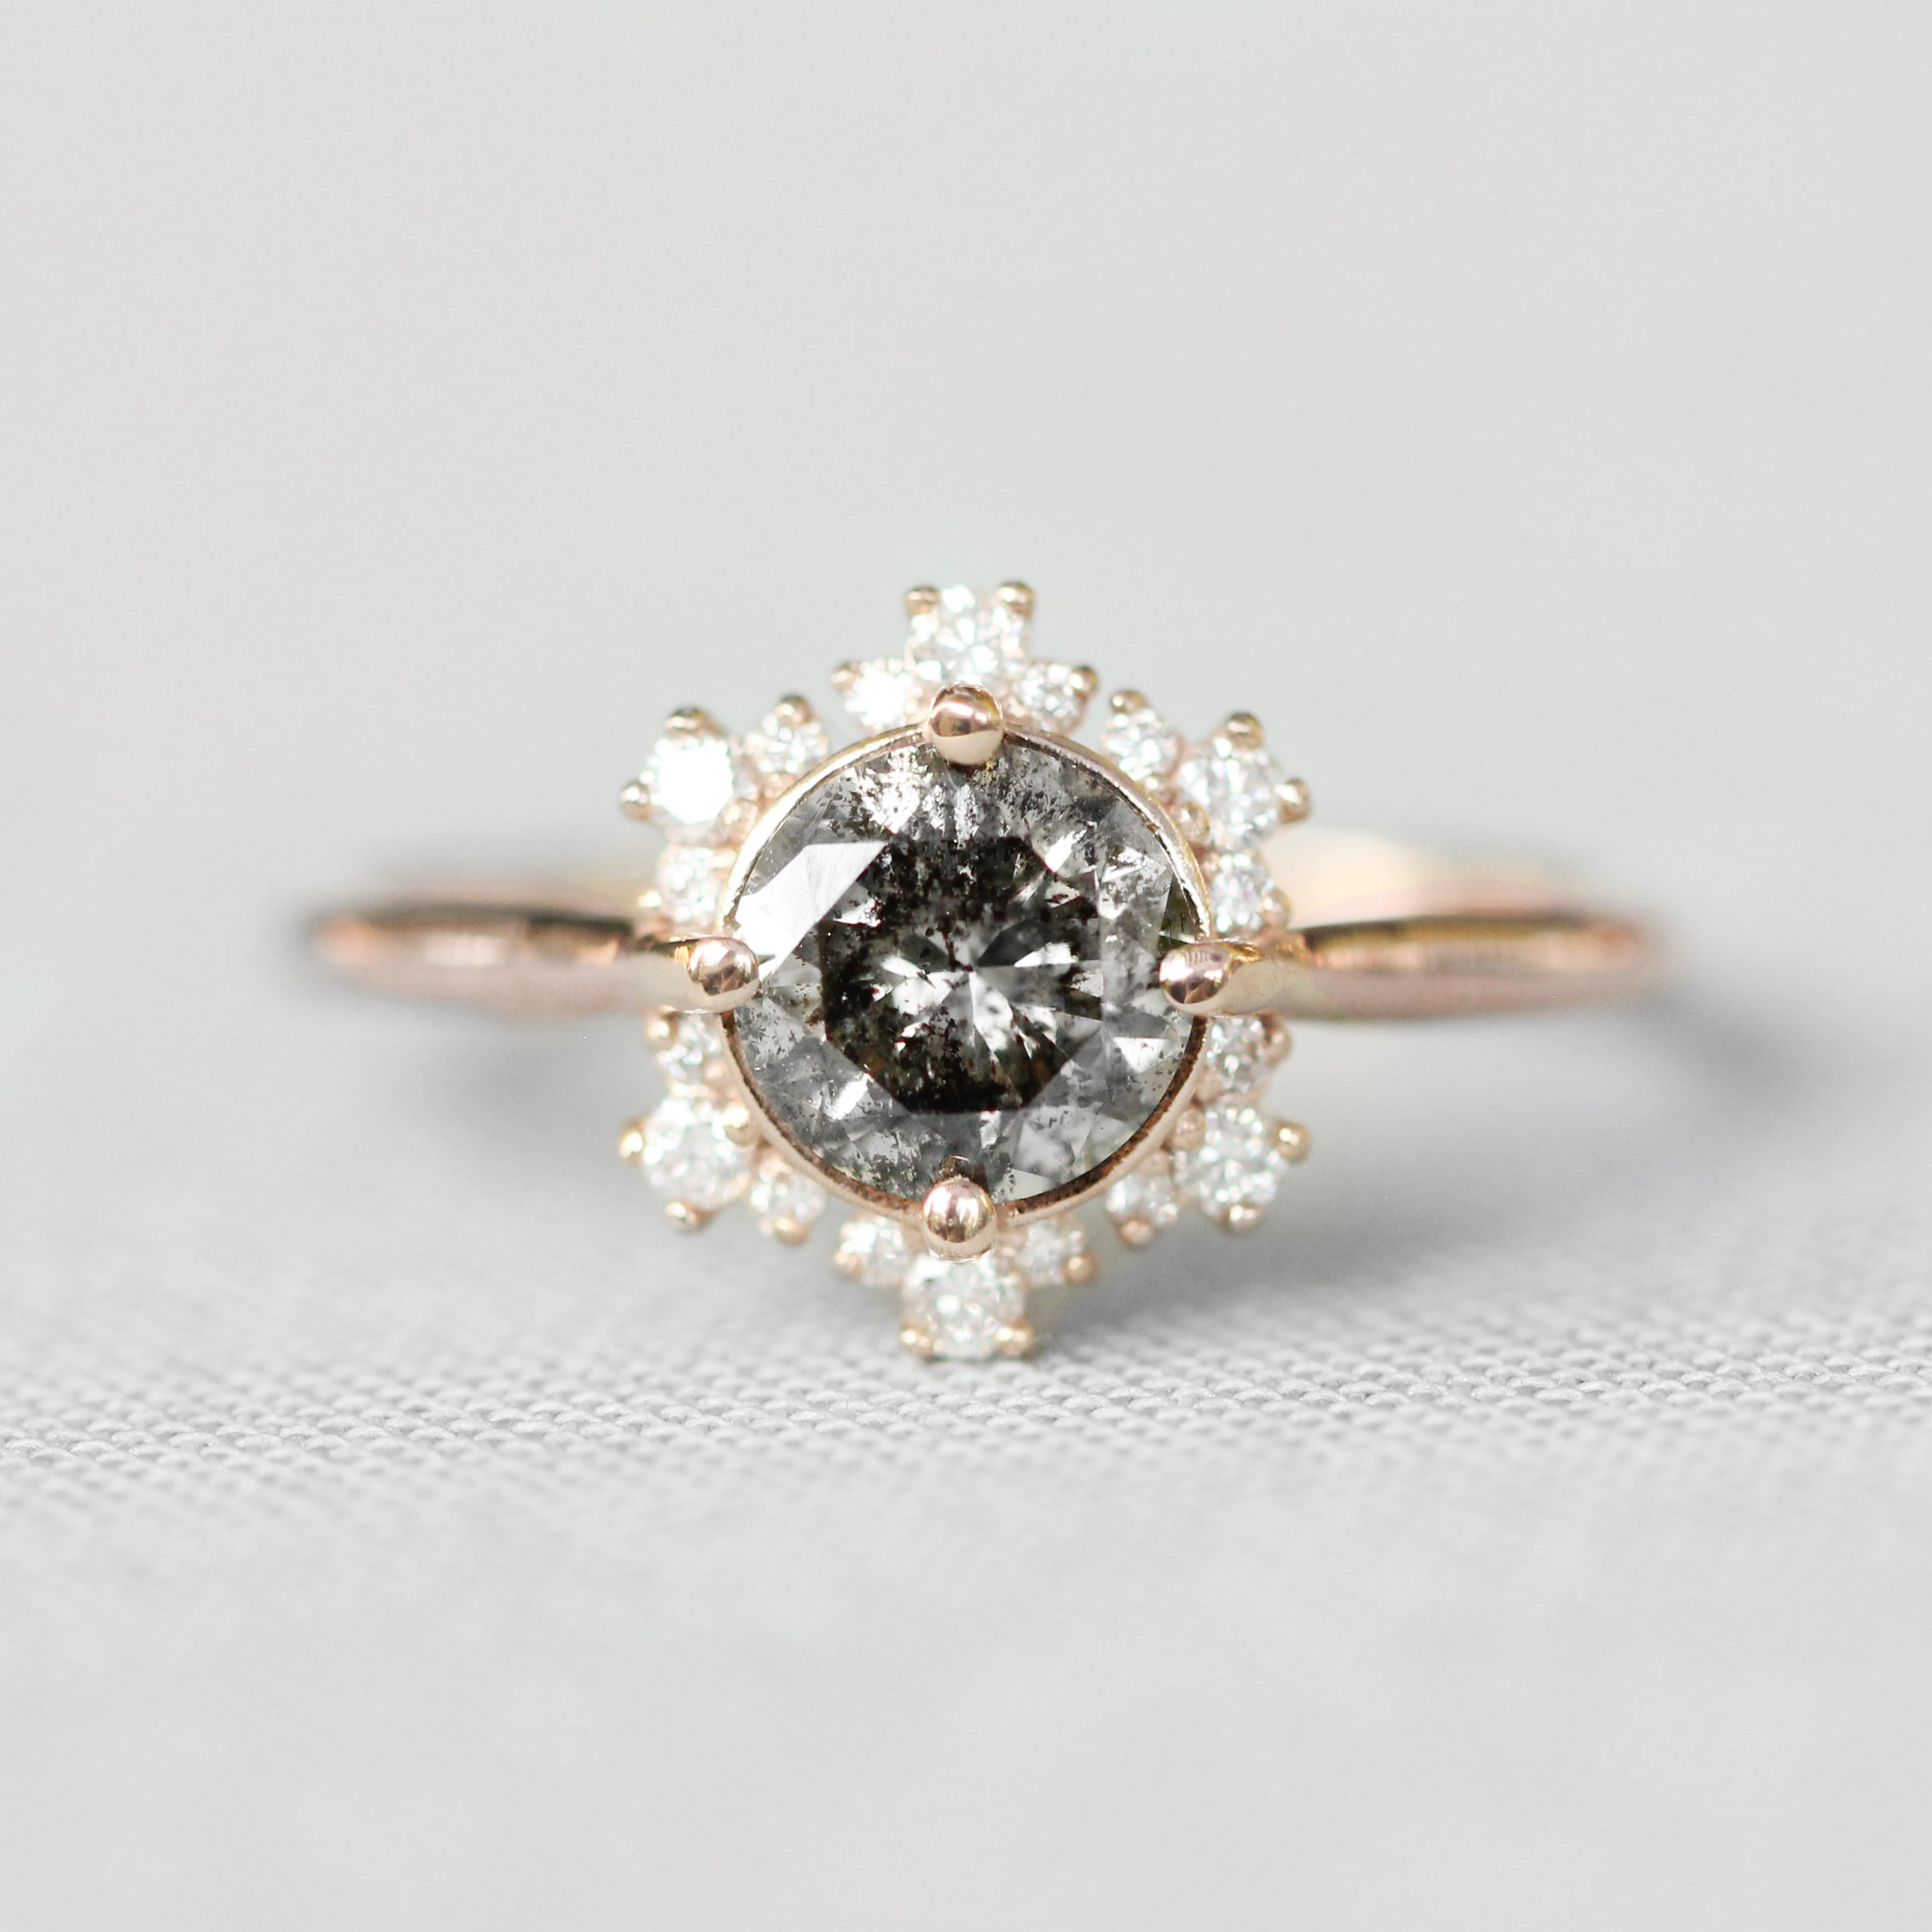 Orida Ring with a 1 Carat Celestial and Diamond Hexagon Halo in 10k Rose Gold - Ready to Size and Ship